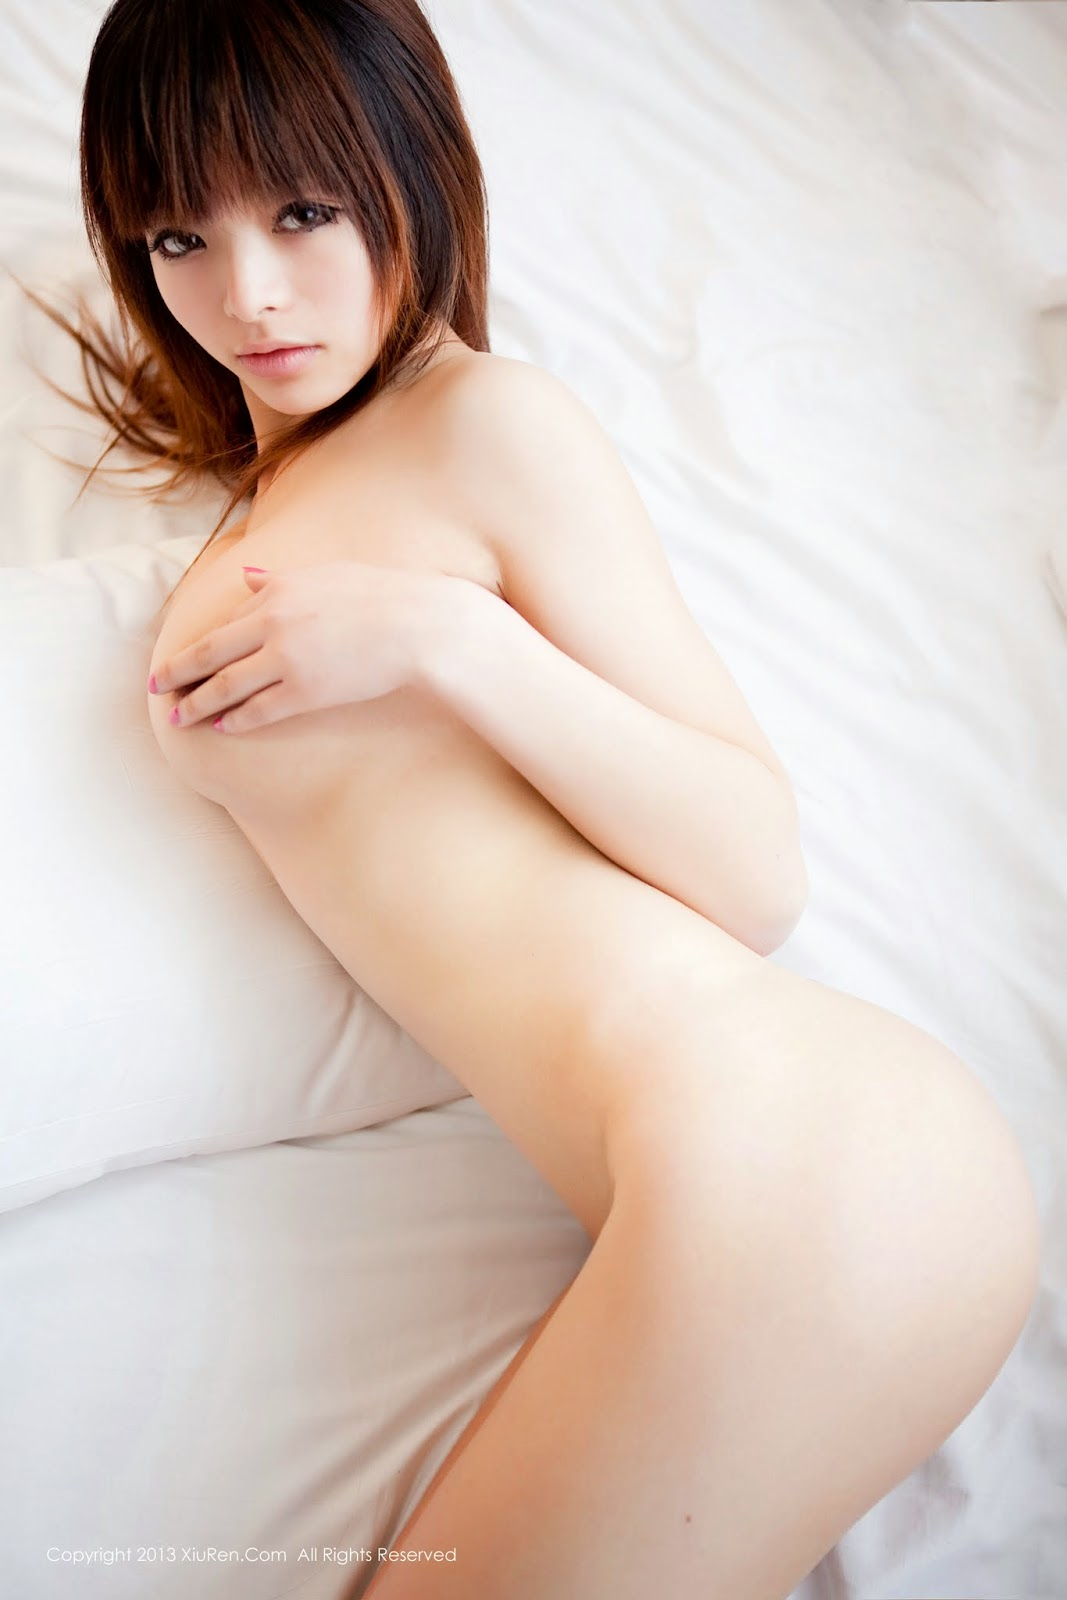 young girls nude opening you sexy legs pic nude